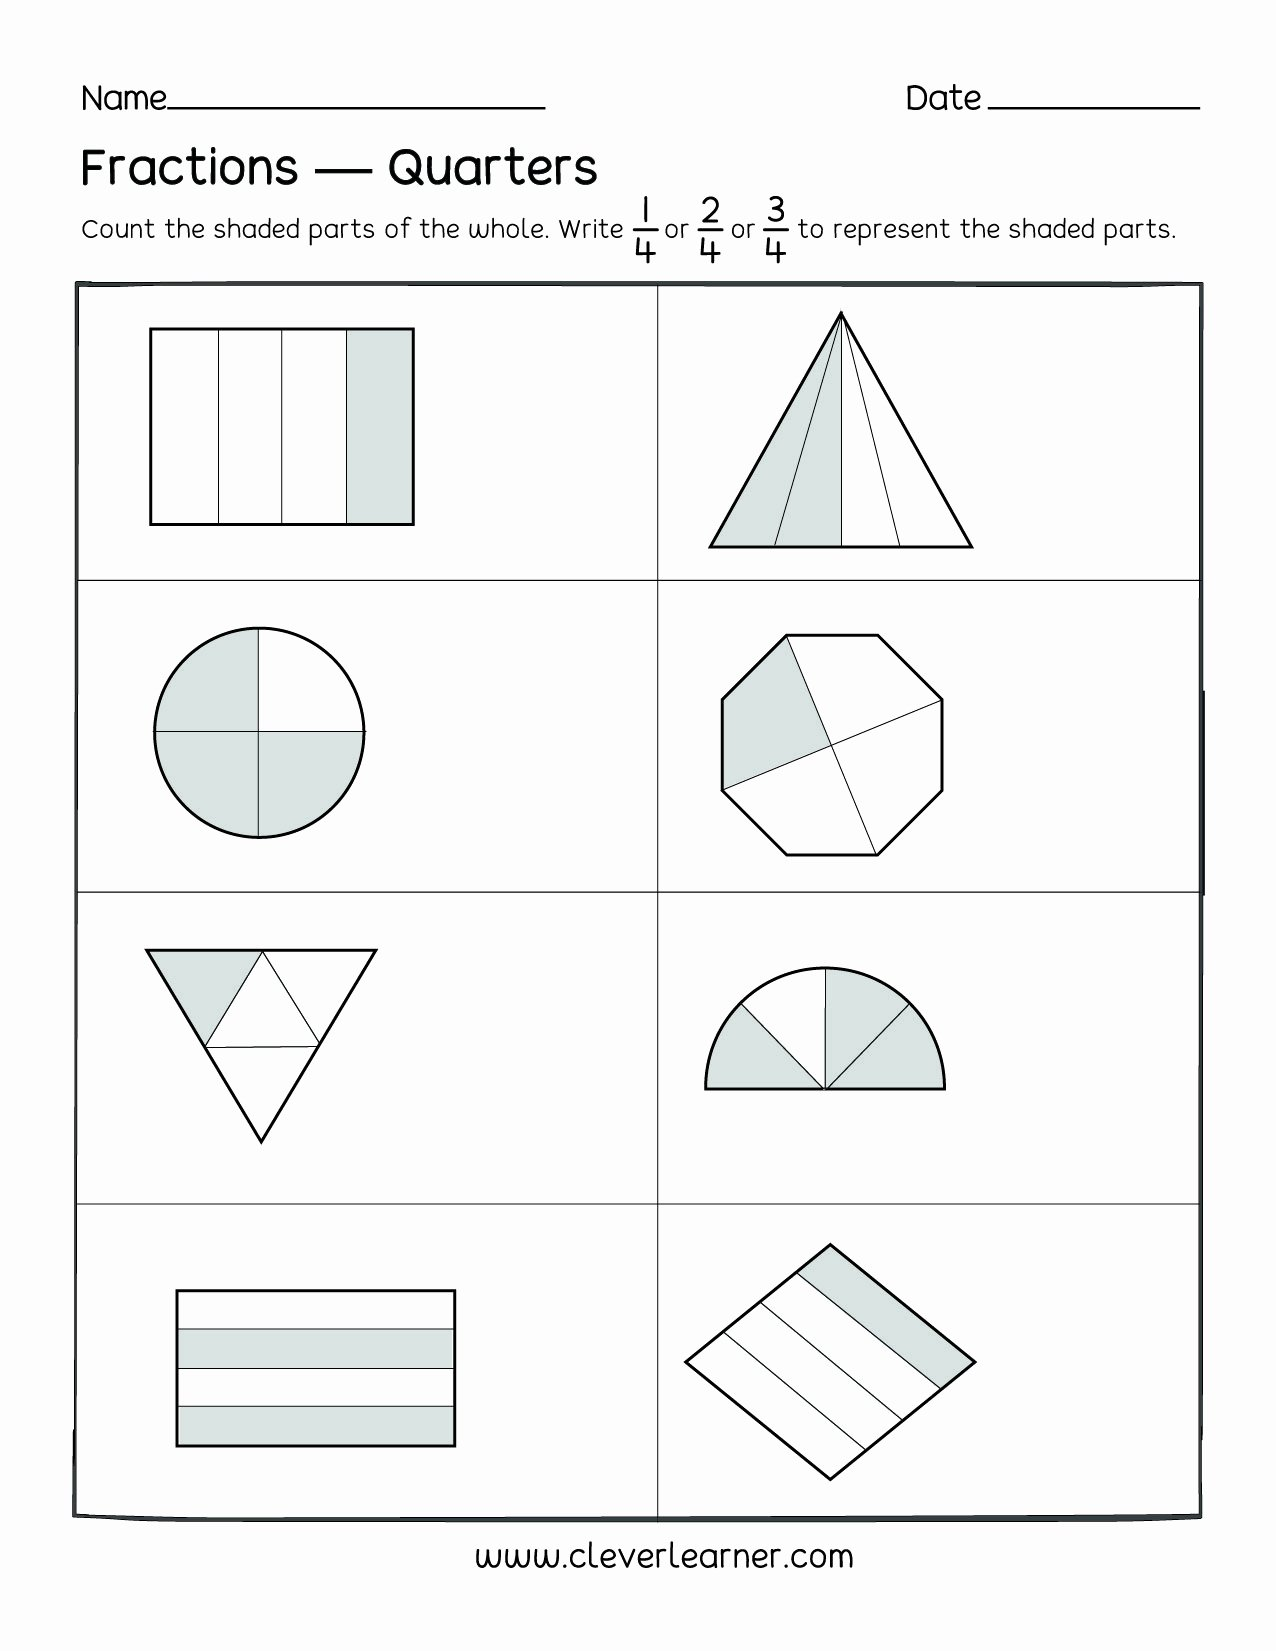 Quarter Worksheets for Preschoolers Best Of Fun Activity On Fractions Fourths Worksheets for Children